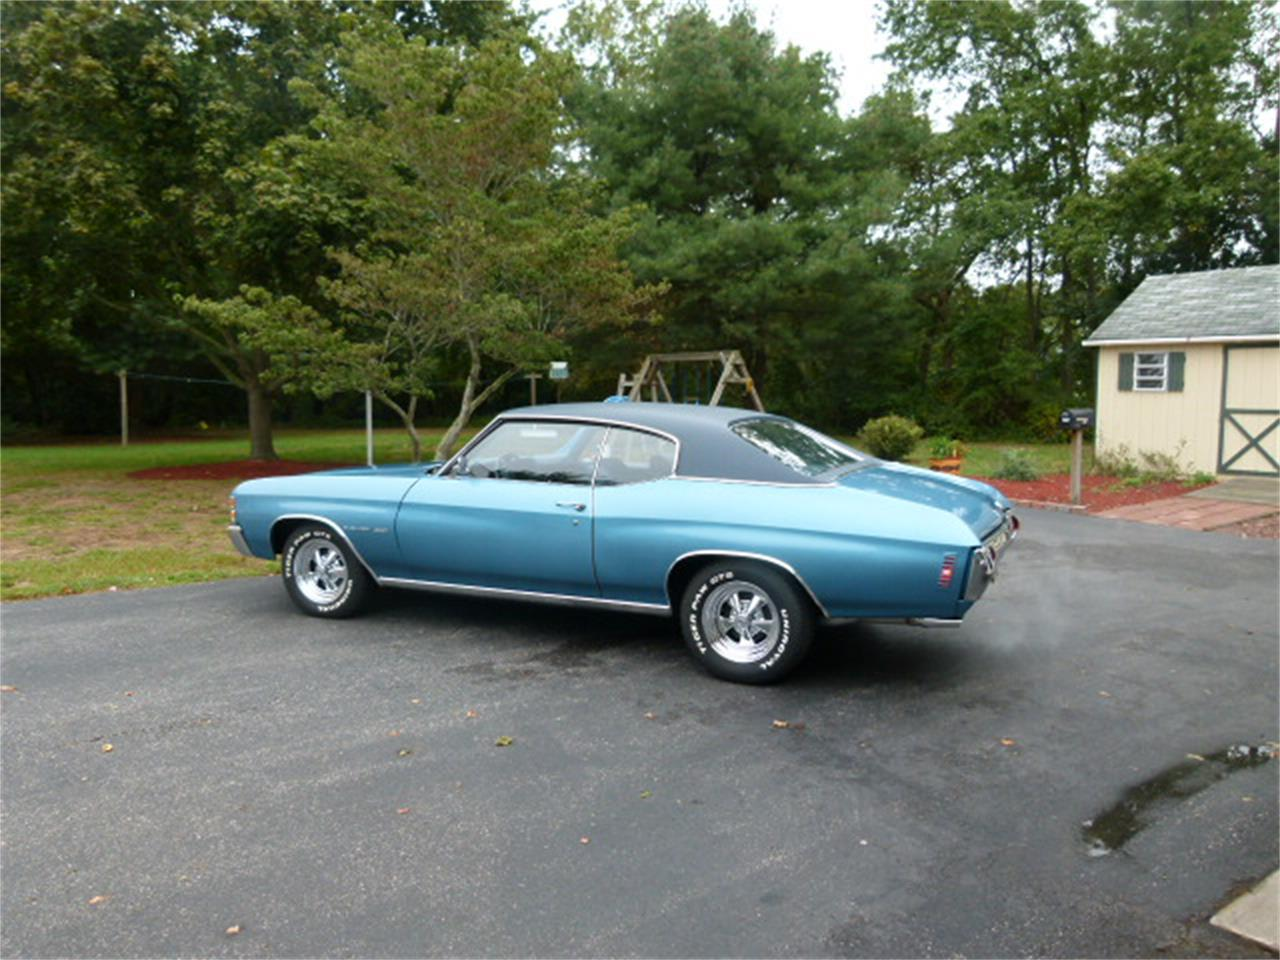 Large Picture of Classic '71 Chevrolet Chevelle located in Virginia Offered by a Private Seller - N3CN